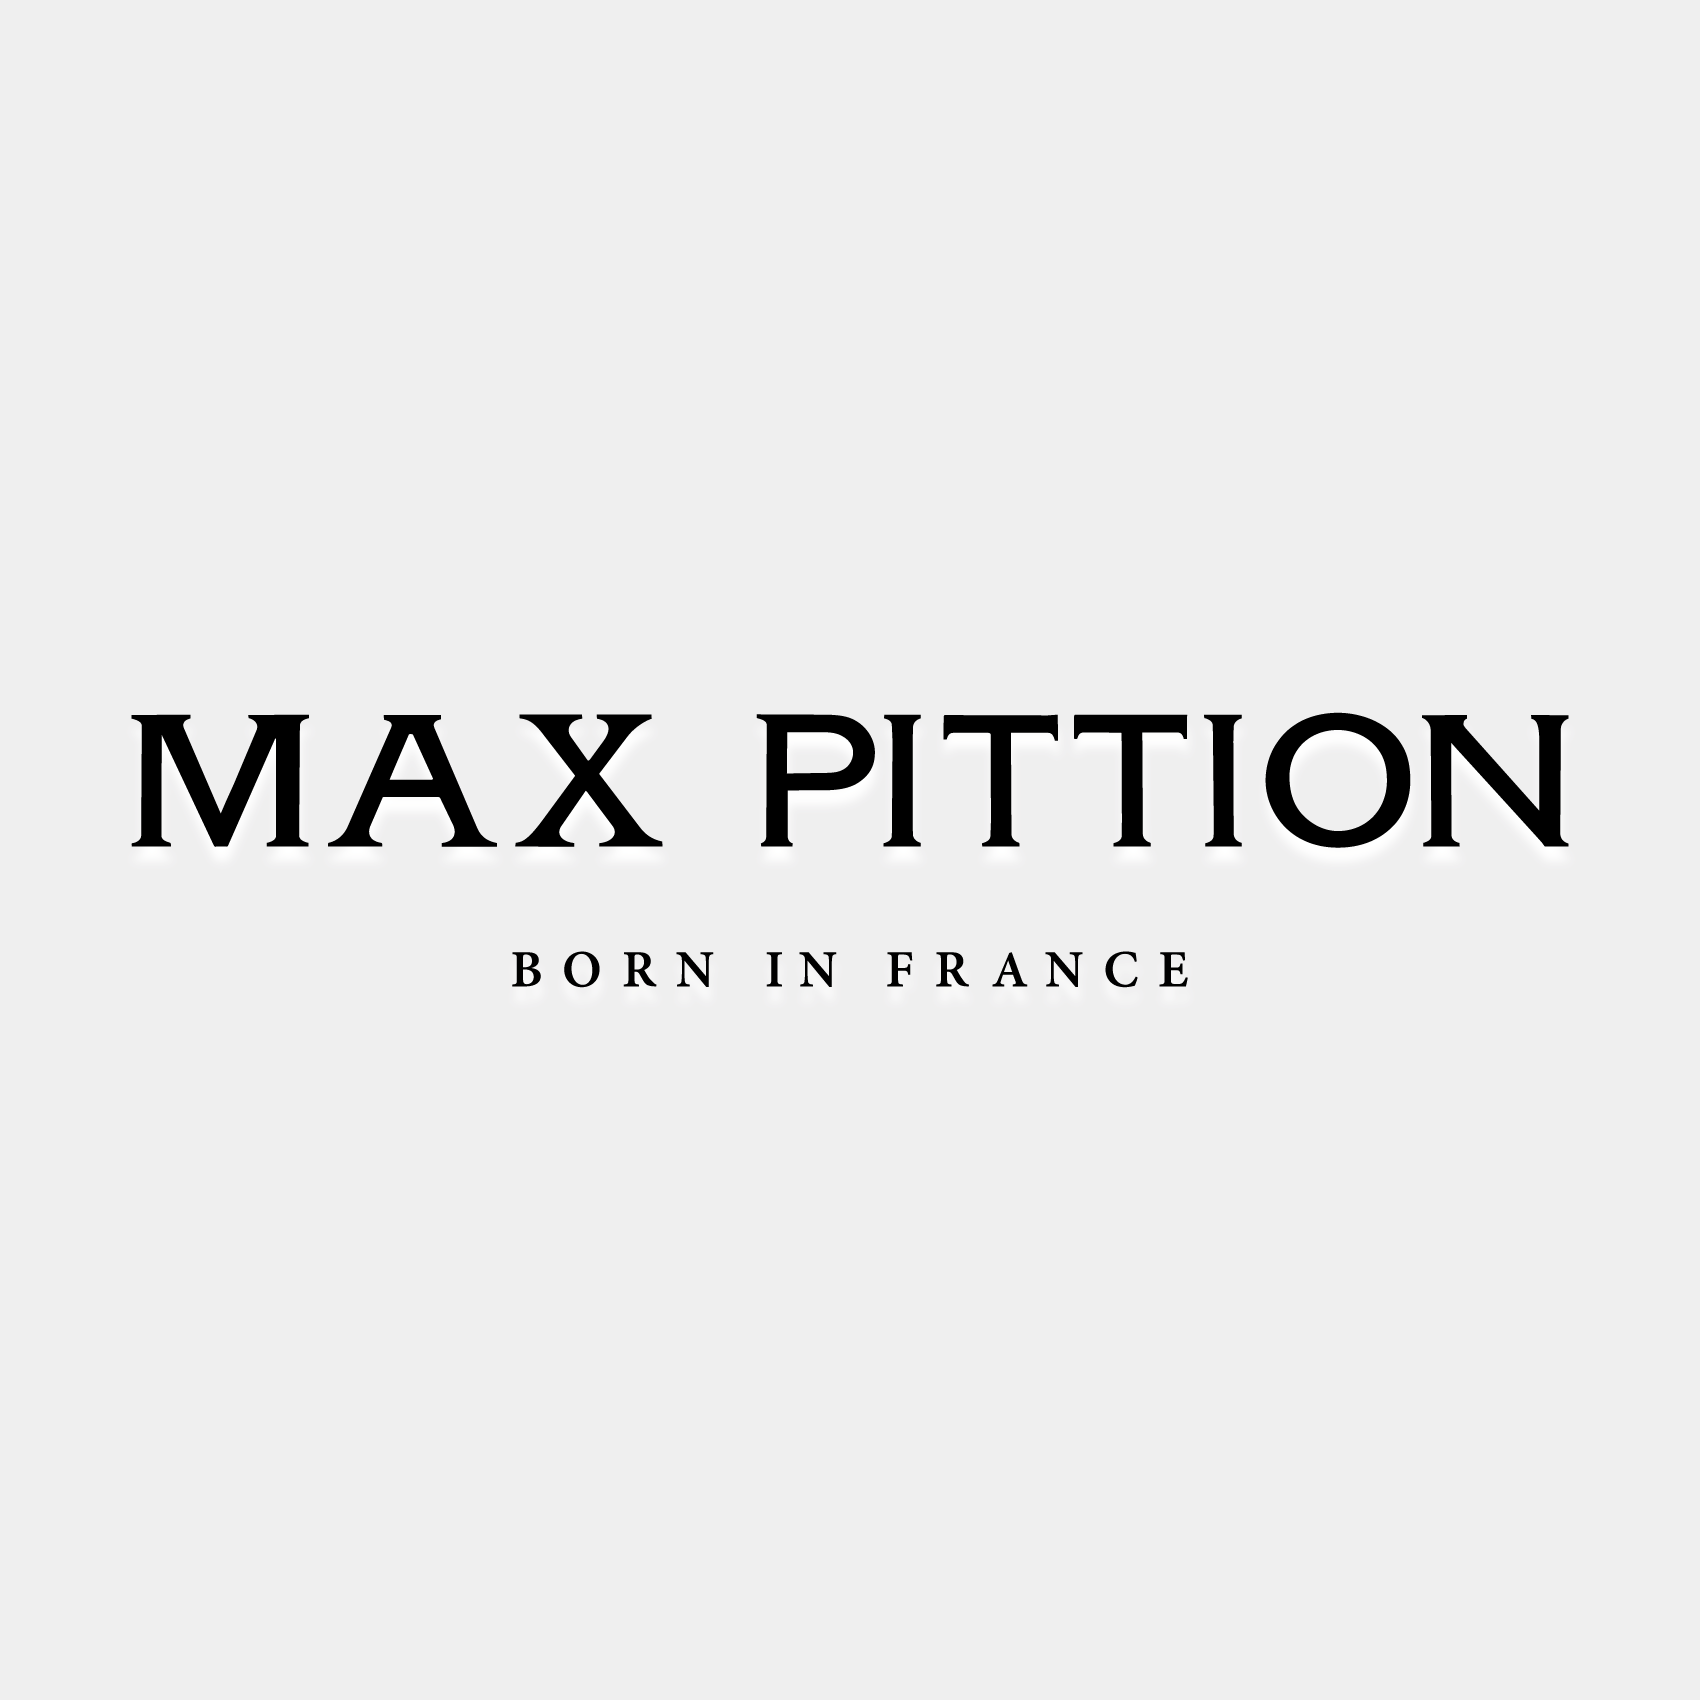 max-pittion-160308